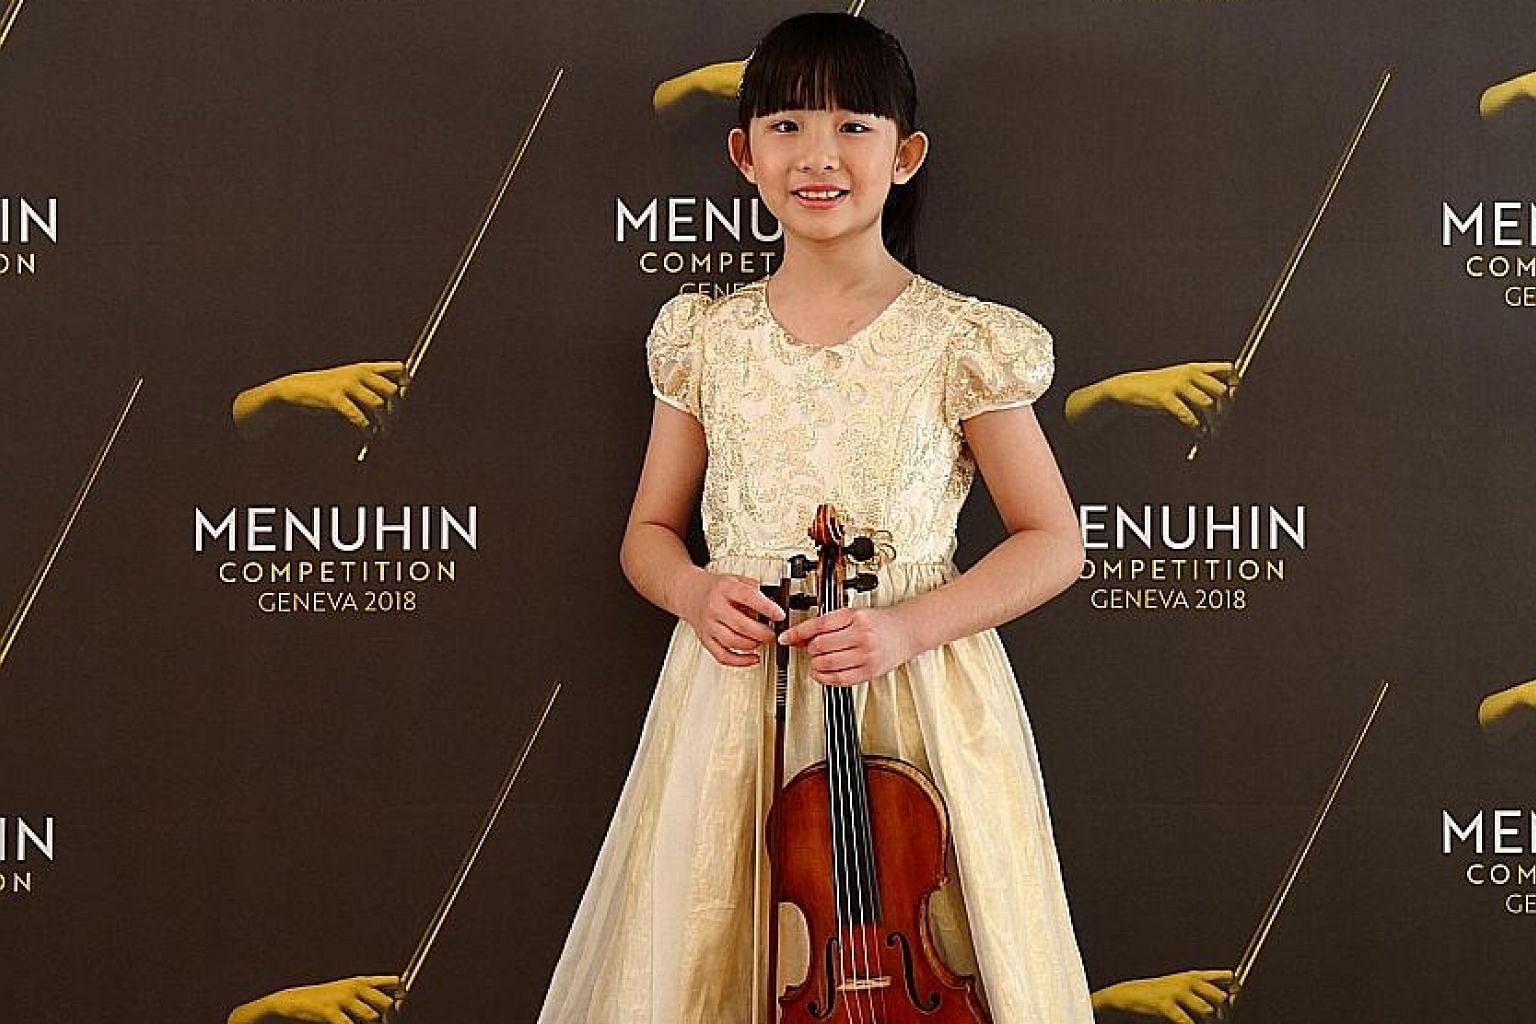 Chloe Chua will receive $13,500 and a one-year loan of a fine old Italian violin by Florian Leonhard Fine Violins as her prize.